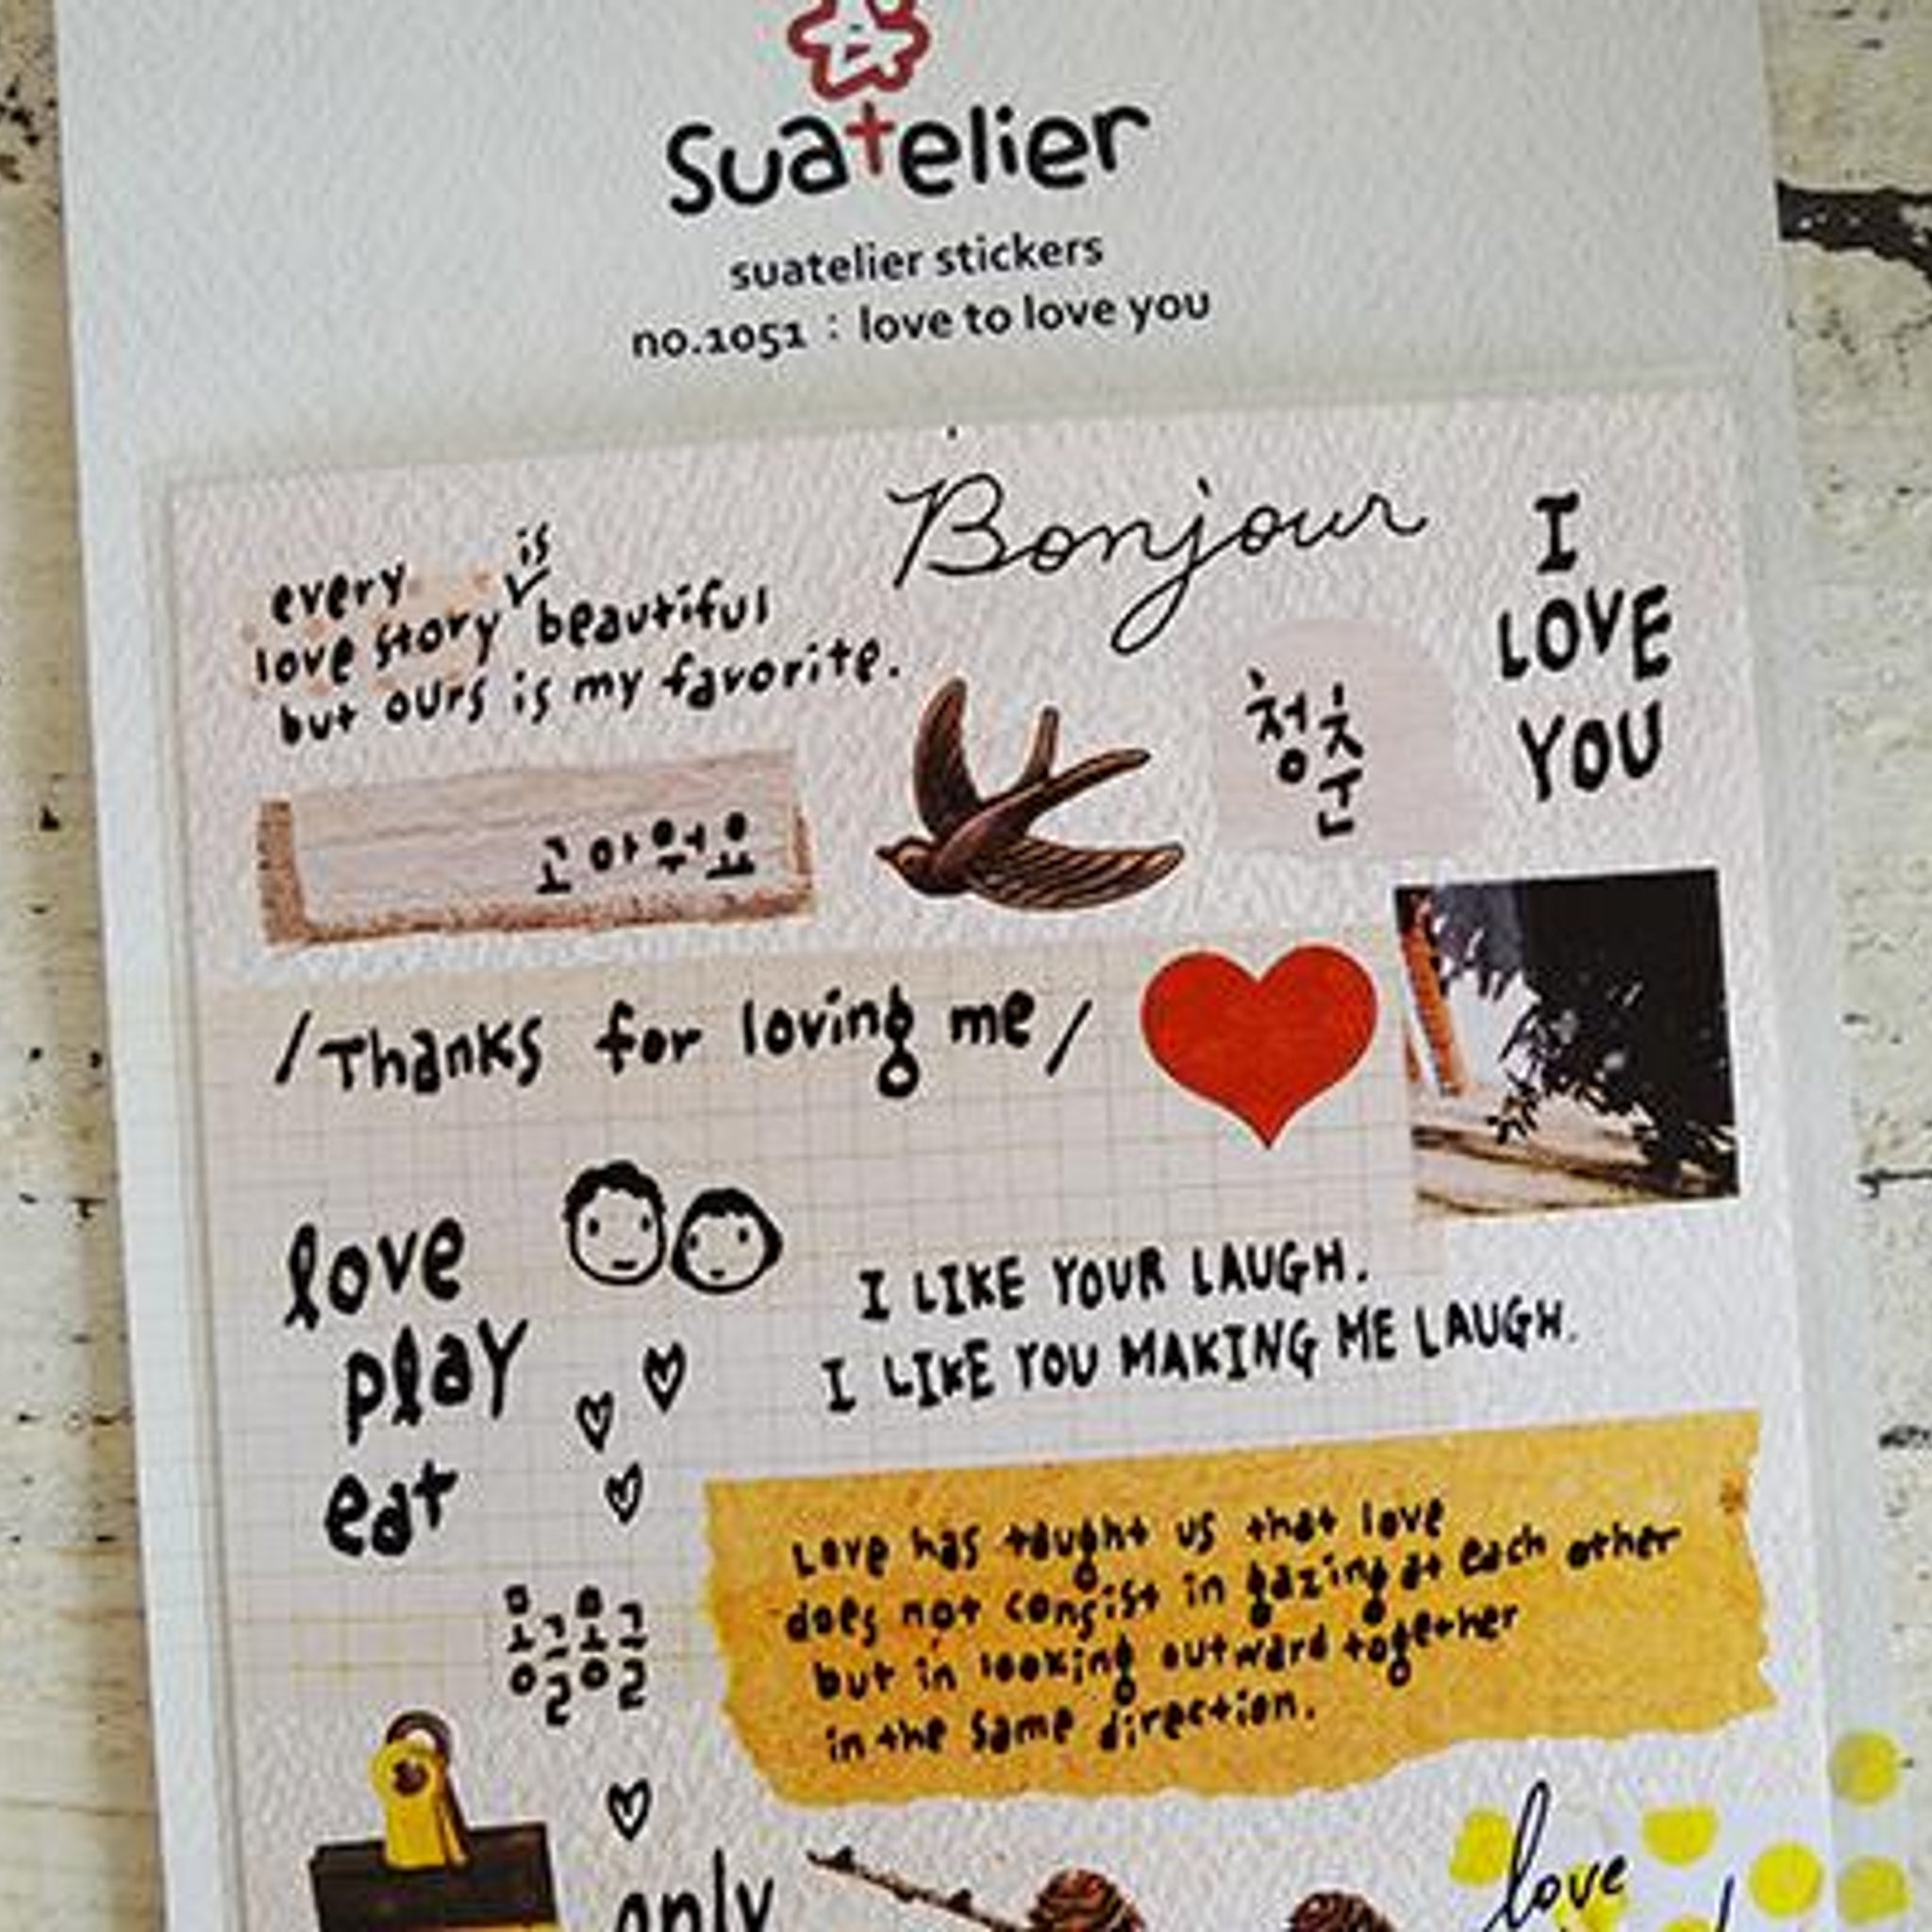 Suatelier Love To Love You sticker